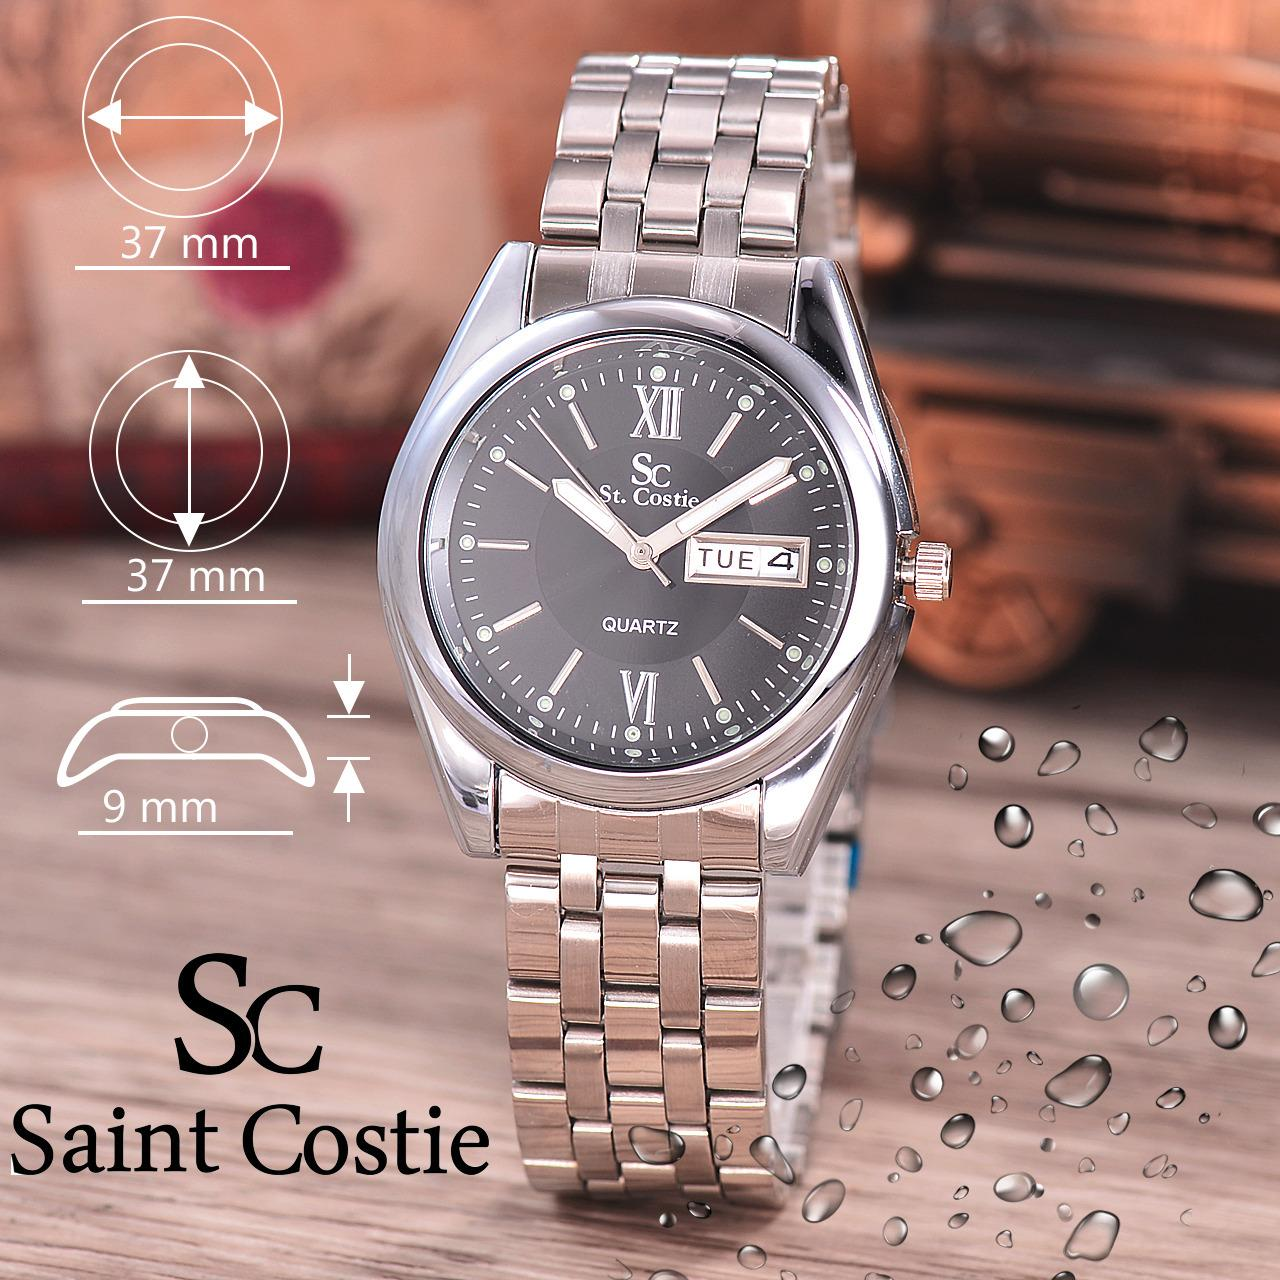 Saint Costie Original Brand Jam Tangan Pria Body Silver Black Dial Stainless Stell Band Sc Rt 5236B G Wb Th Saint Costie Diskon